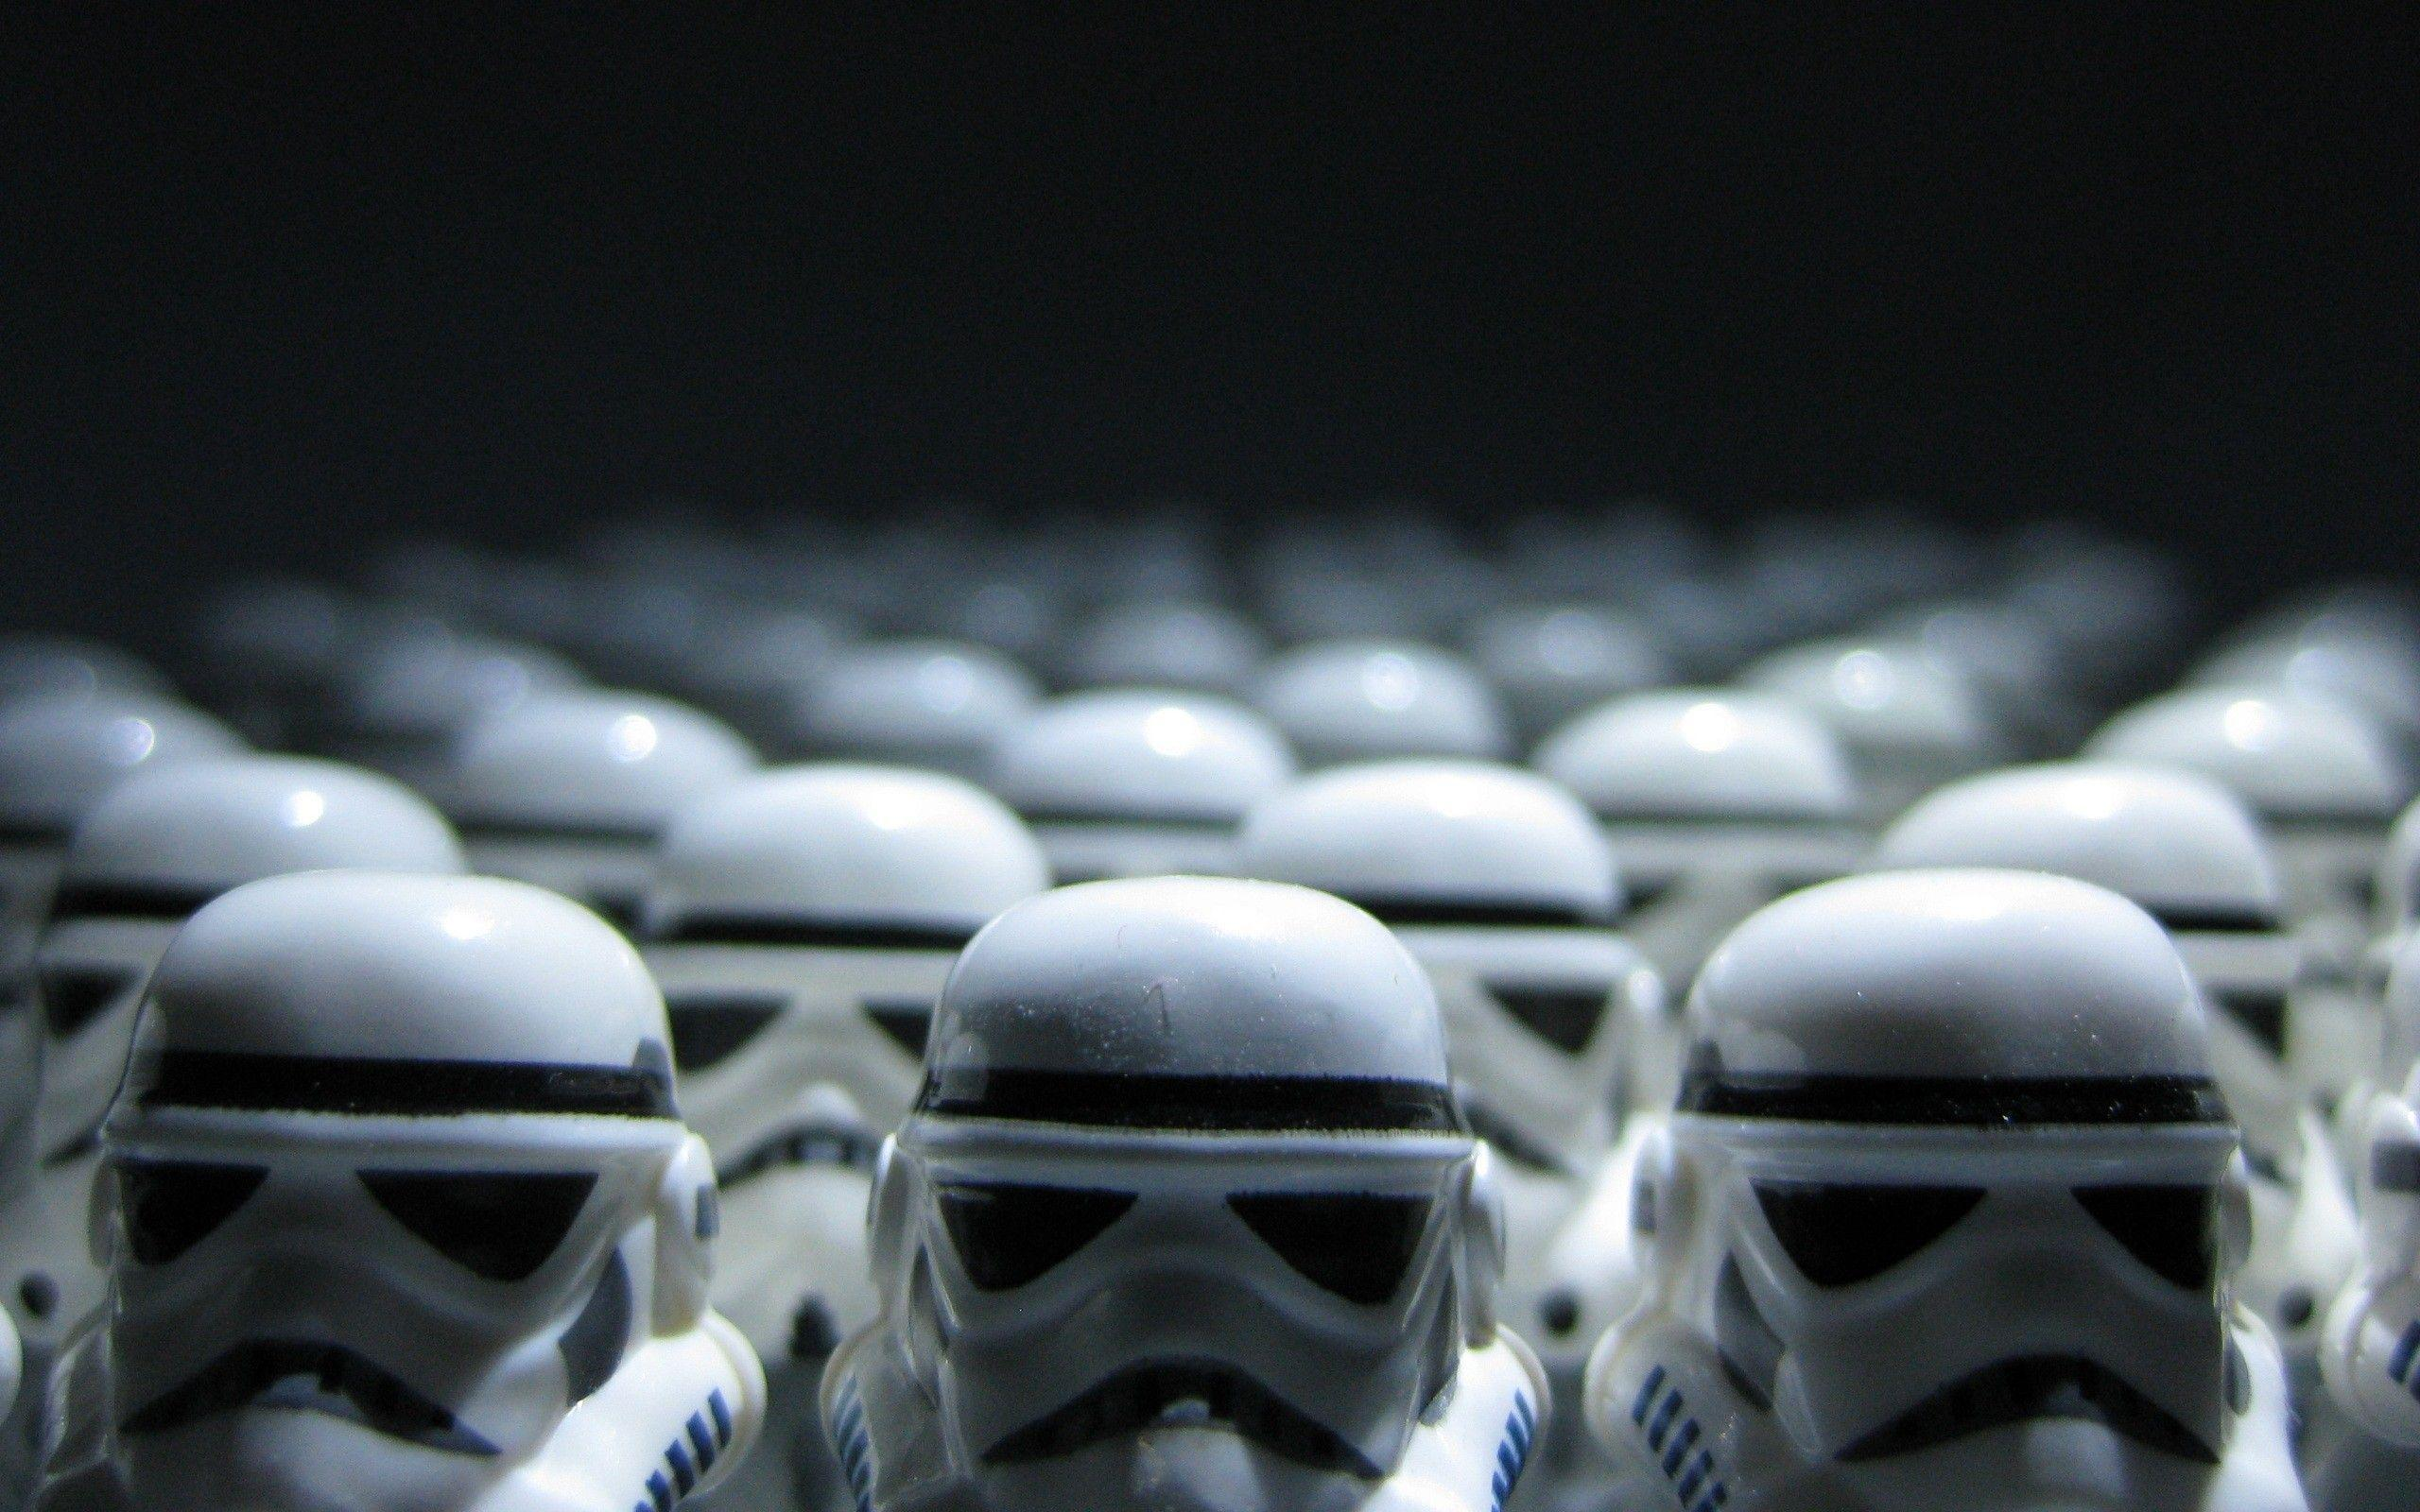 Star Wars Lego Wallpapers Wallpaper Cave